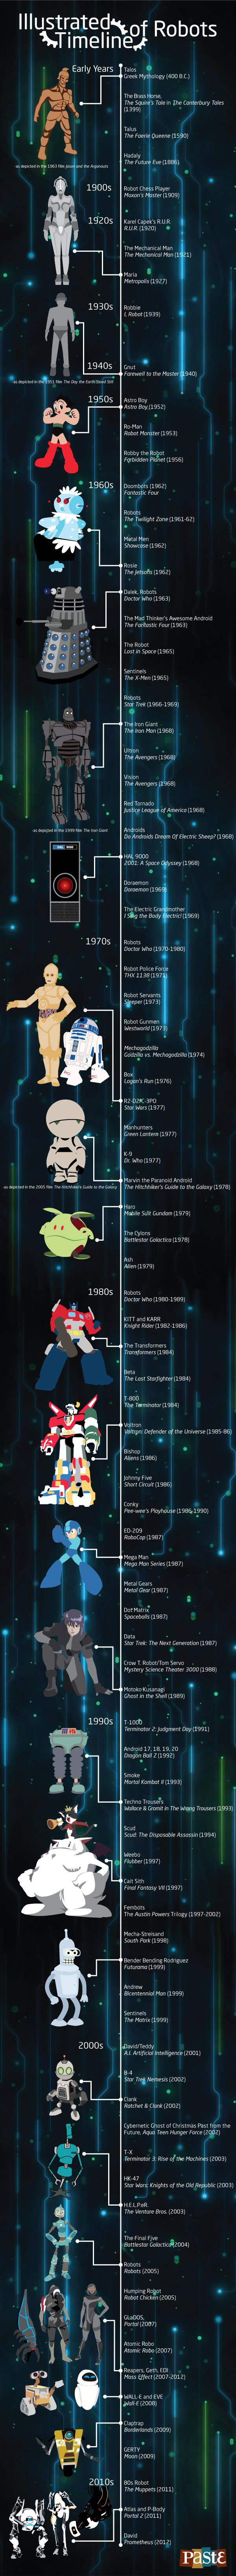 Robot-Timeline-liste-infographic-infographie [600 x 6546]